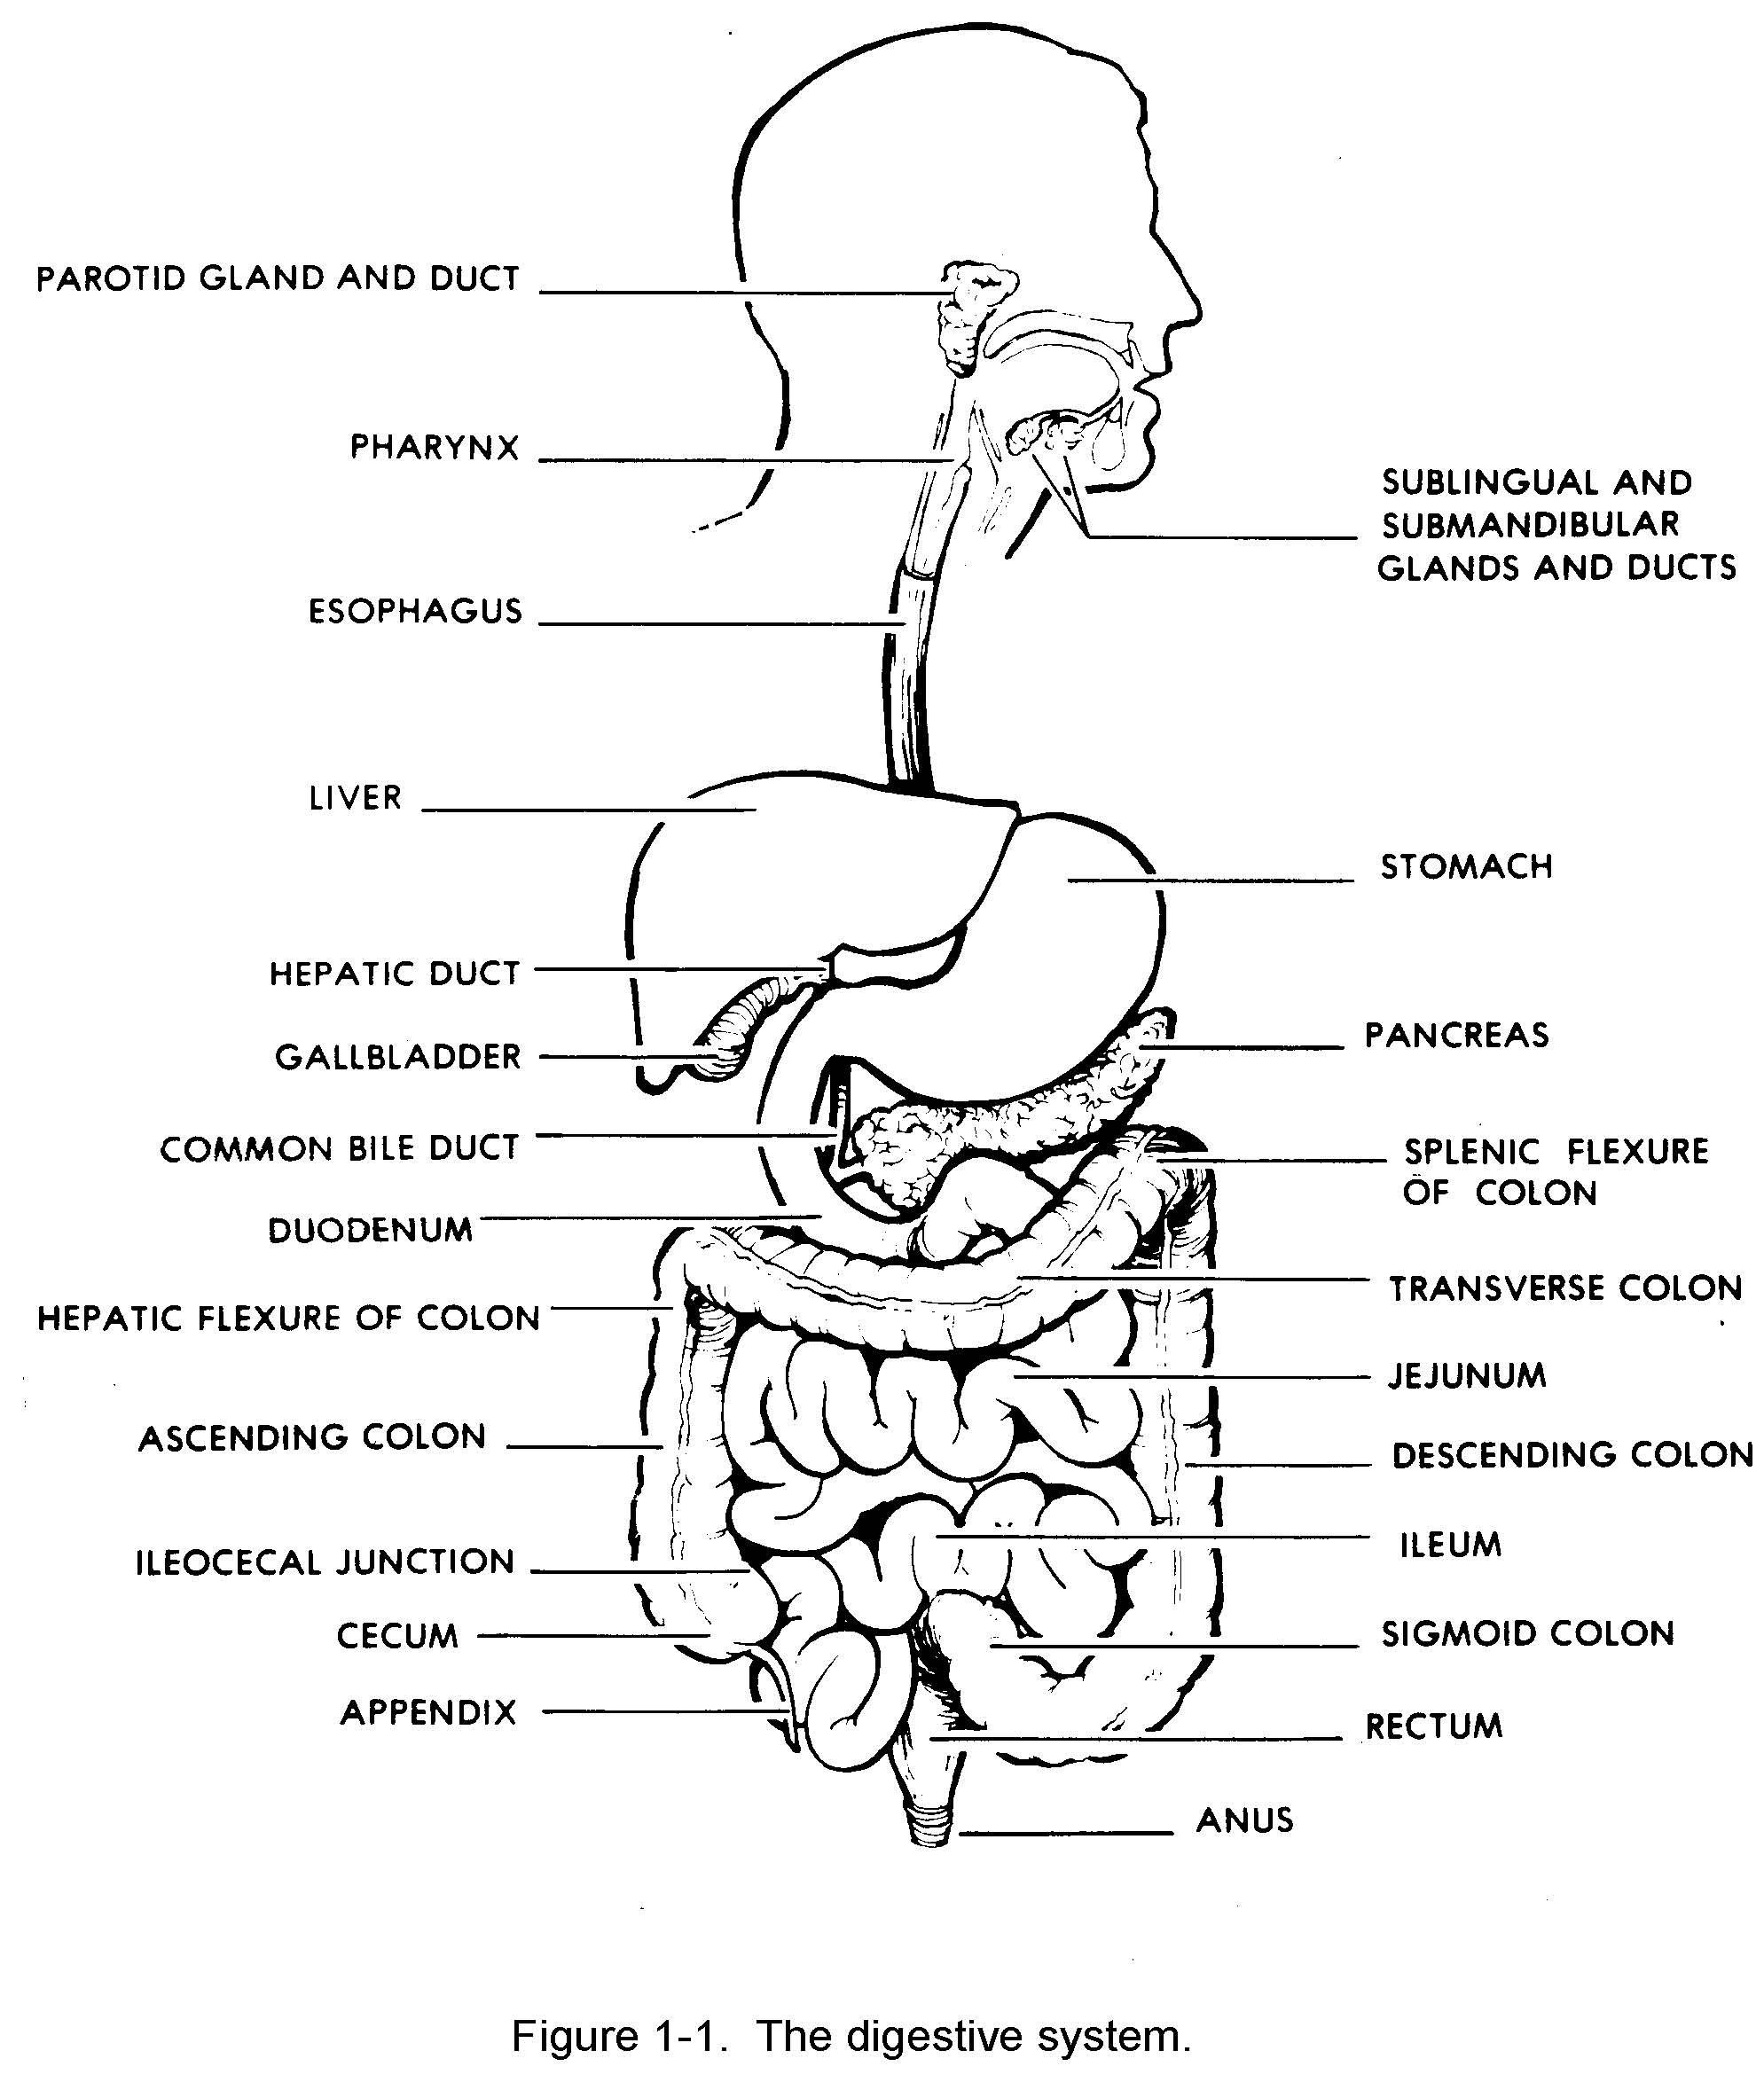 Simple Digestive System Diagram Simple Digestive System